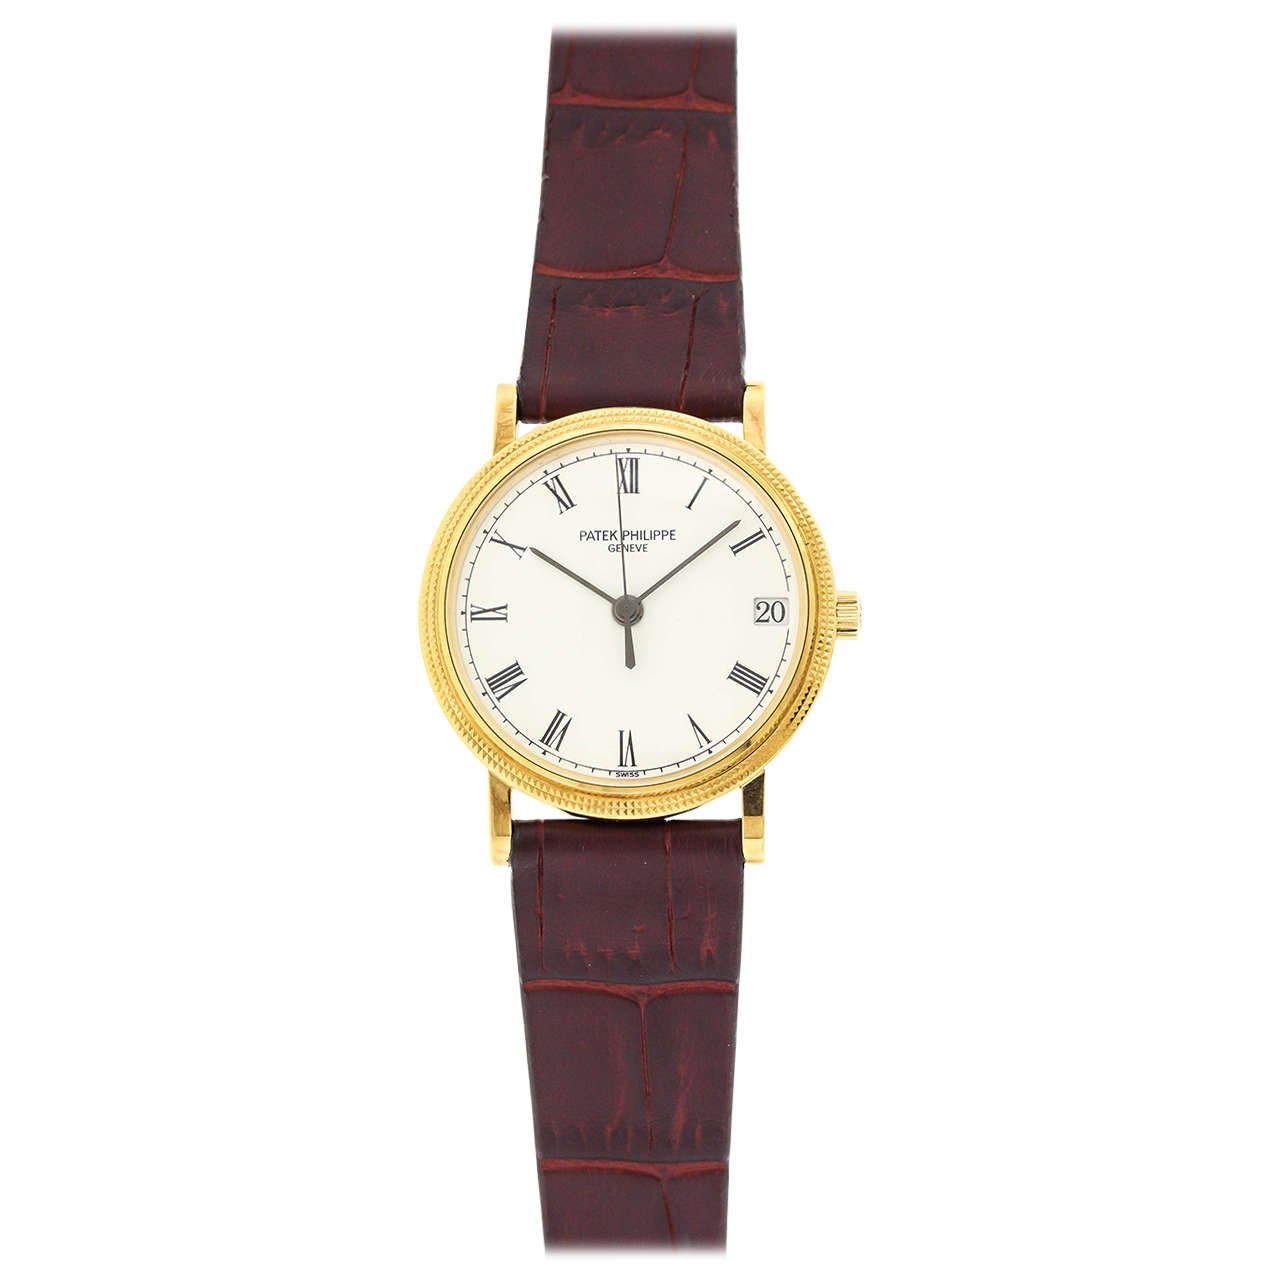 Patek Philippe Yellow Gold Self Winding Calatrava Wristwatch Ref 3802/200